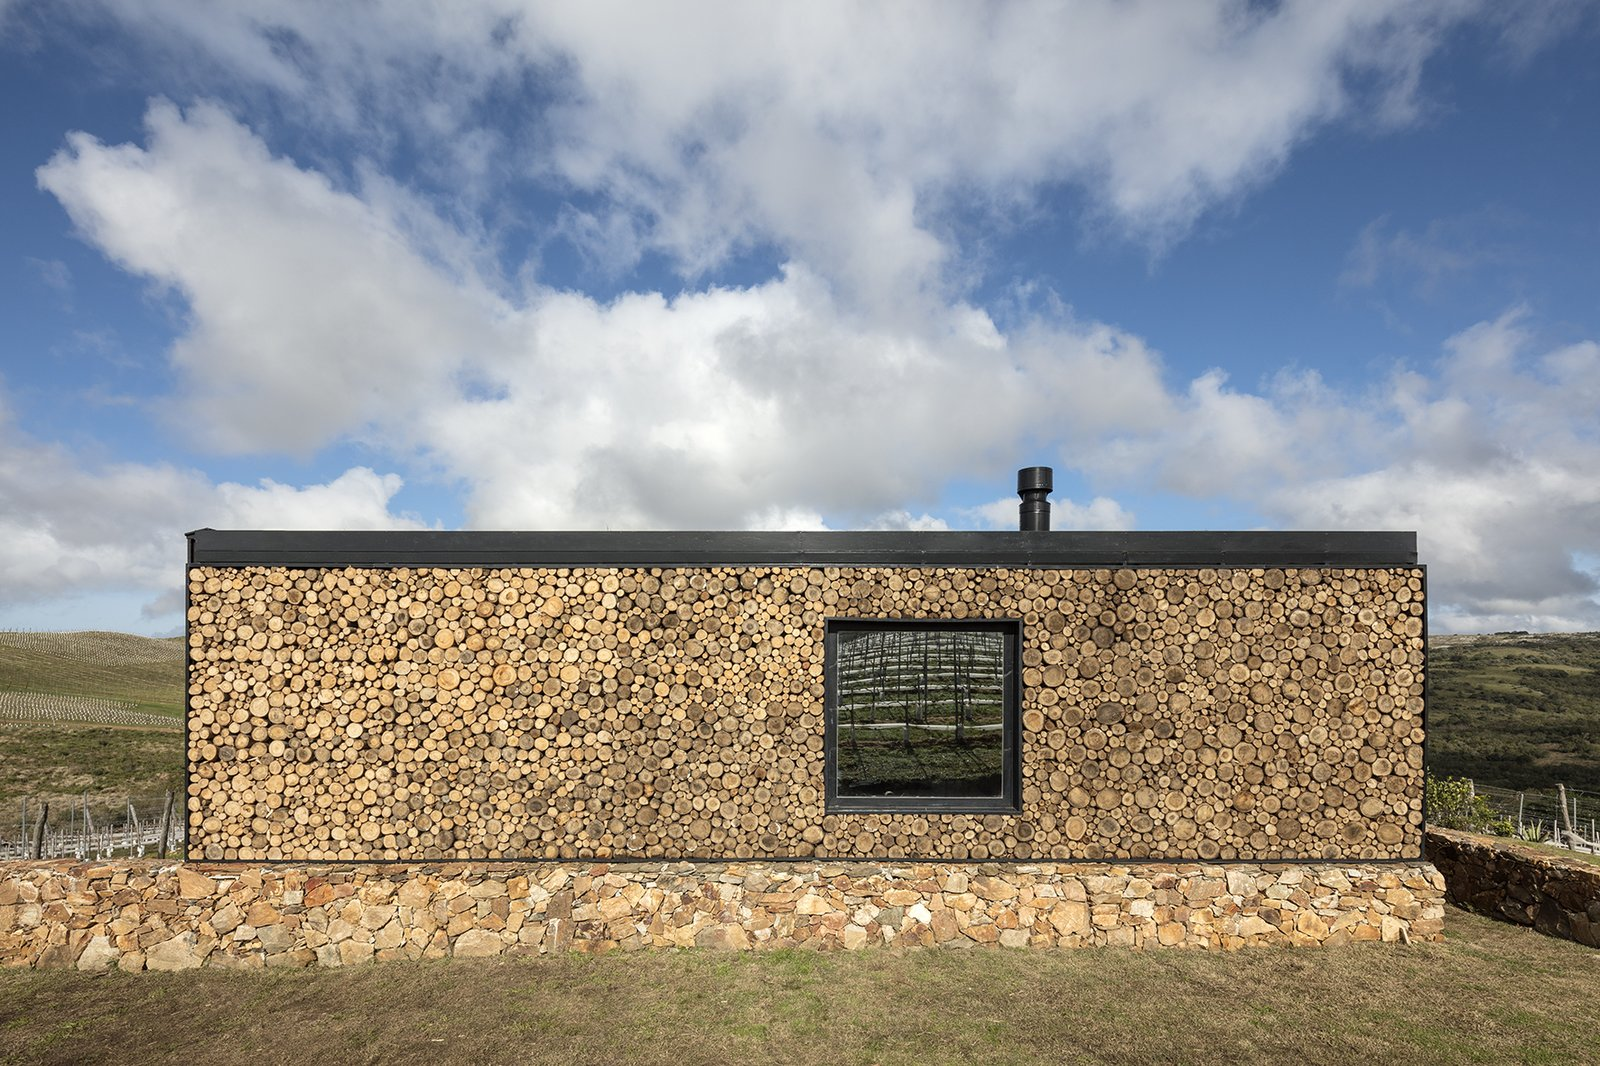 Local materials were used for onsite works such as cut timber trunks for the rear wall and locally sourced stone for the platforms.